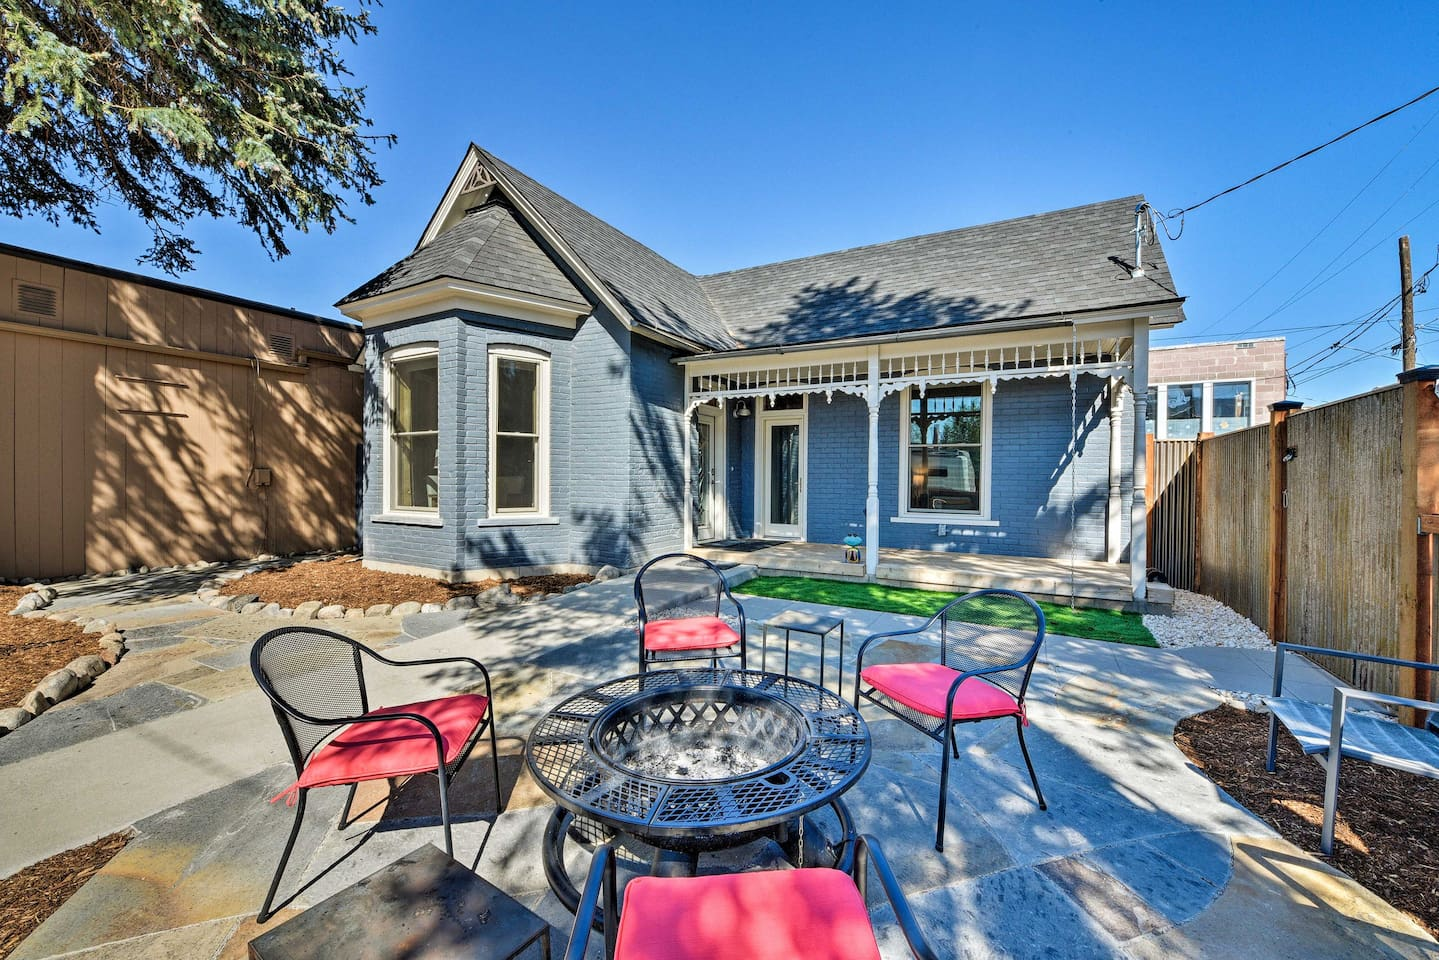 Bring friends along to this vacation rental house in Salida!